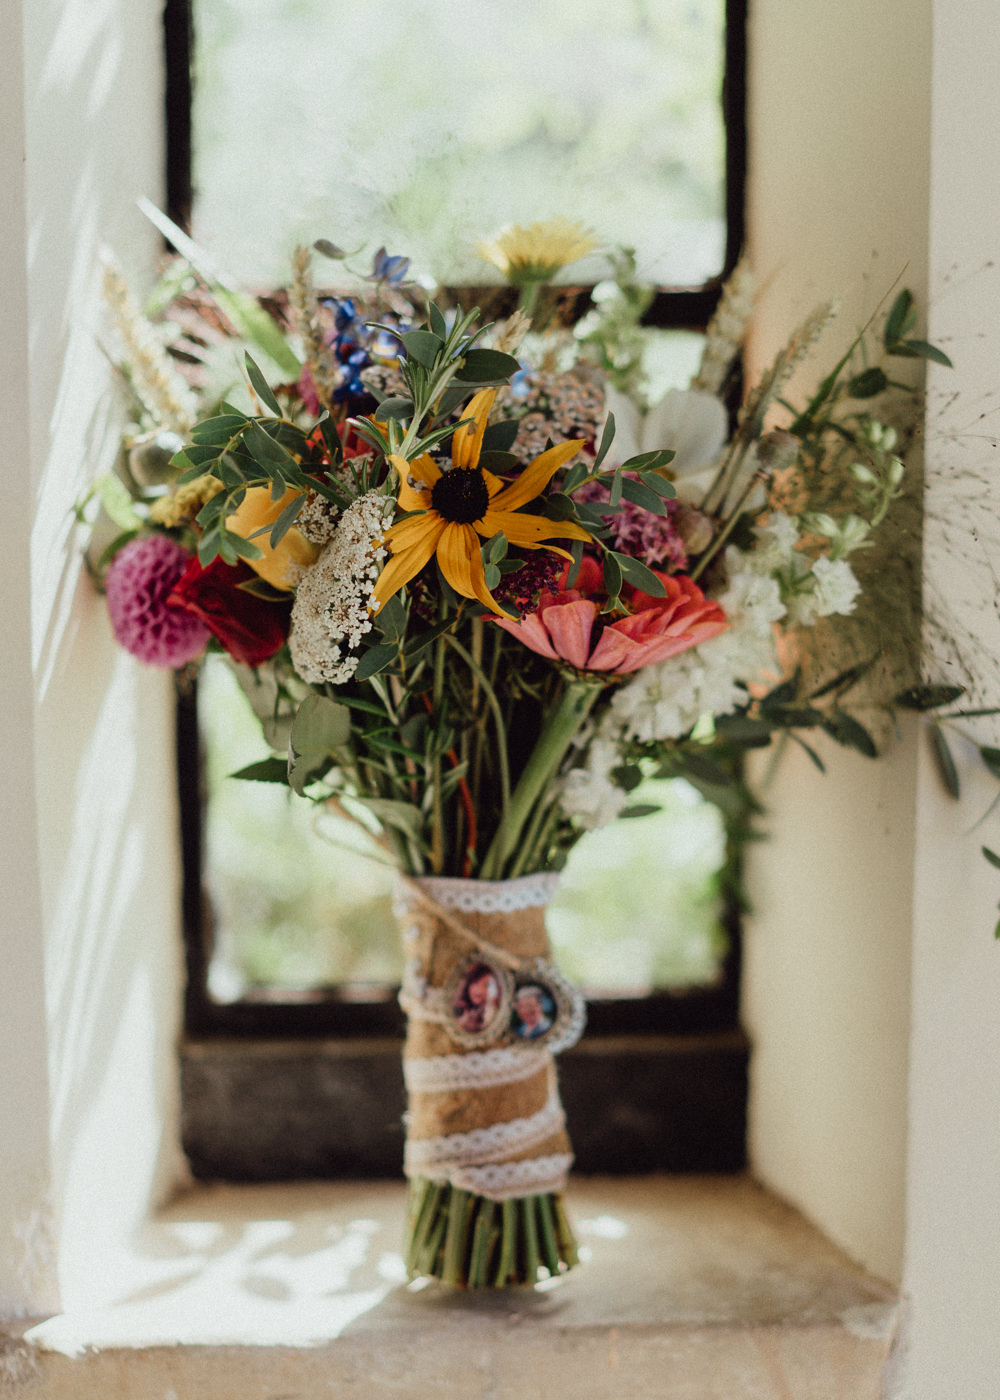 Bouquet Flowers Bride Bridal Dahlia Wheat Greenery Priors Court Barn Wedding Emily & Steve Photography